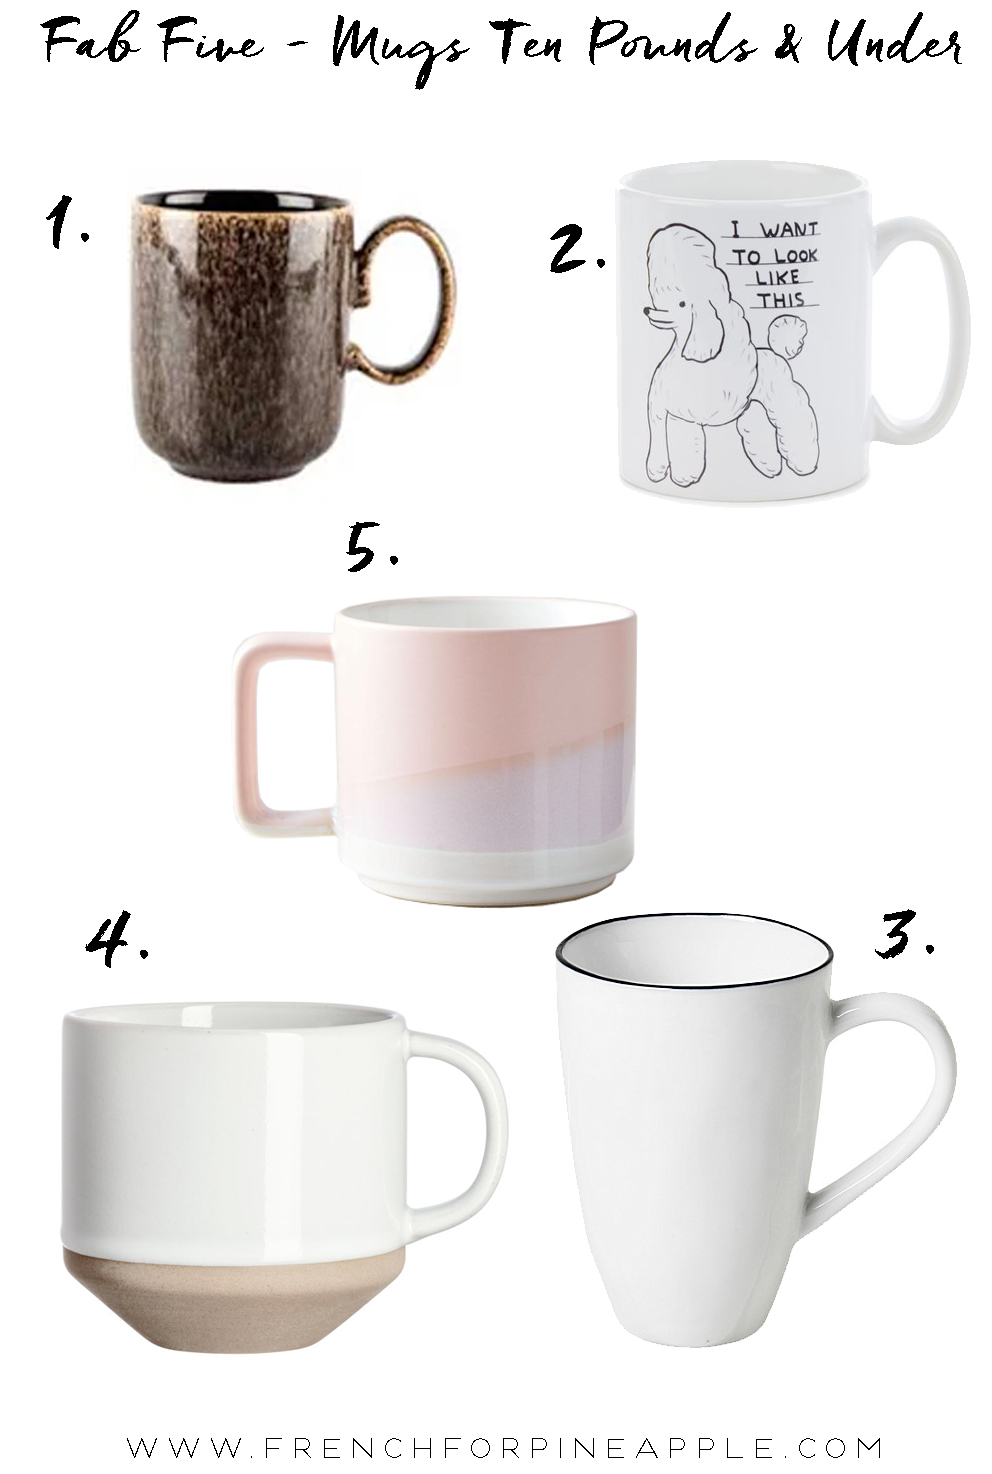 French For Pineapple Blog - Fab Five Mugs Ten Pounds And Under